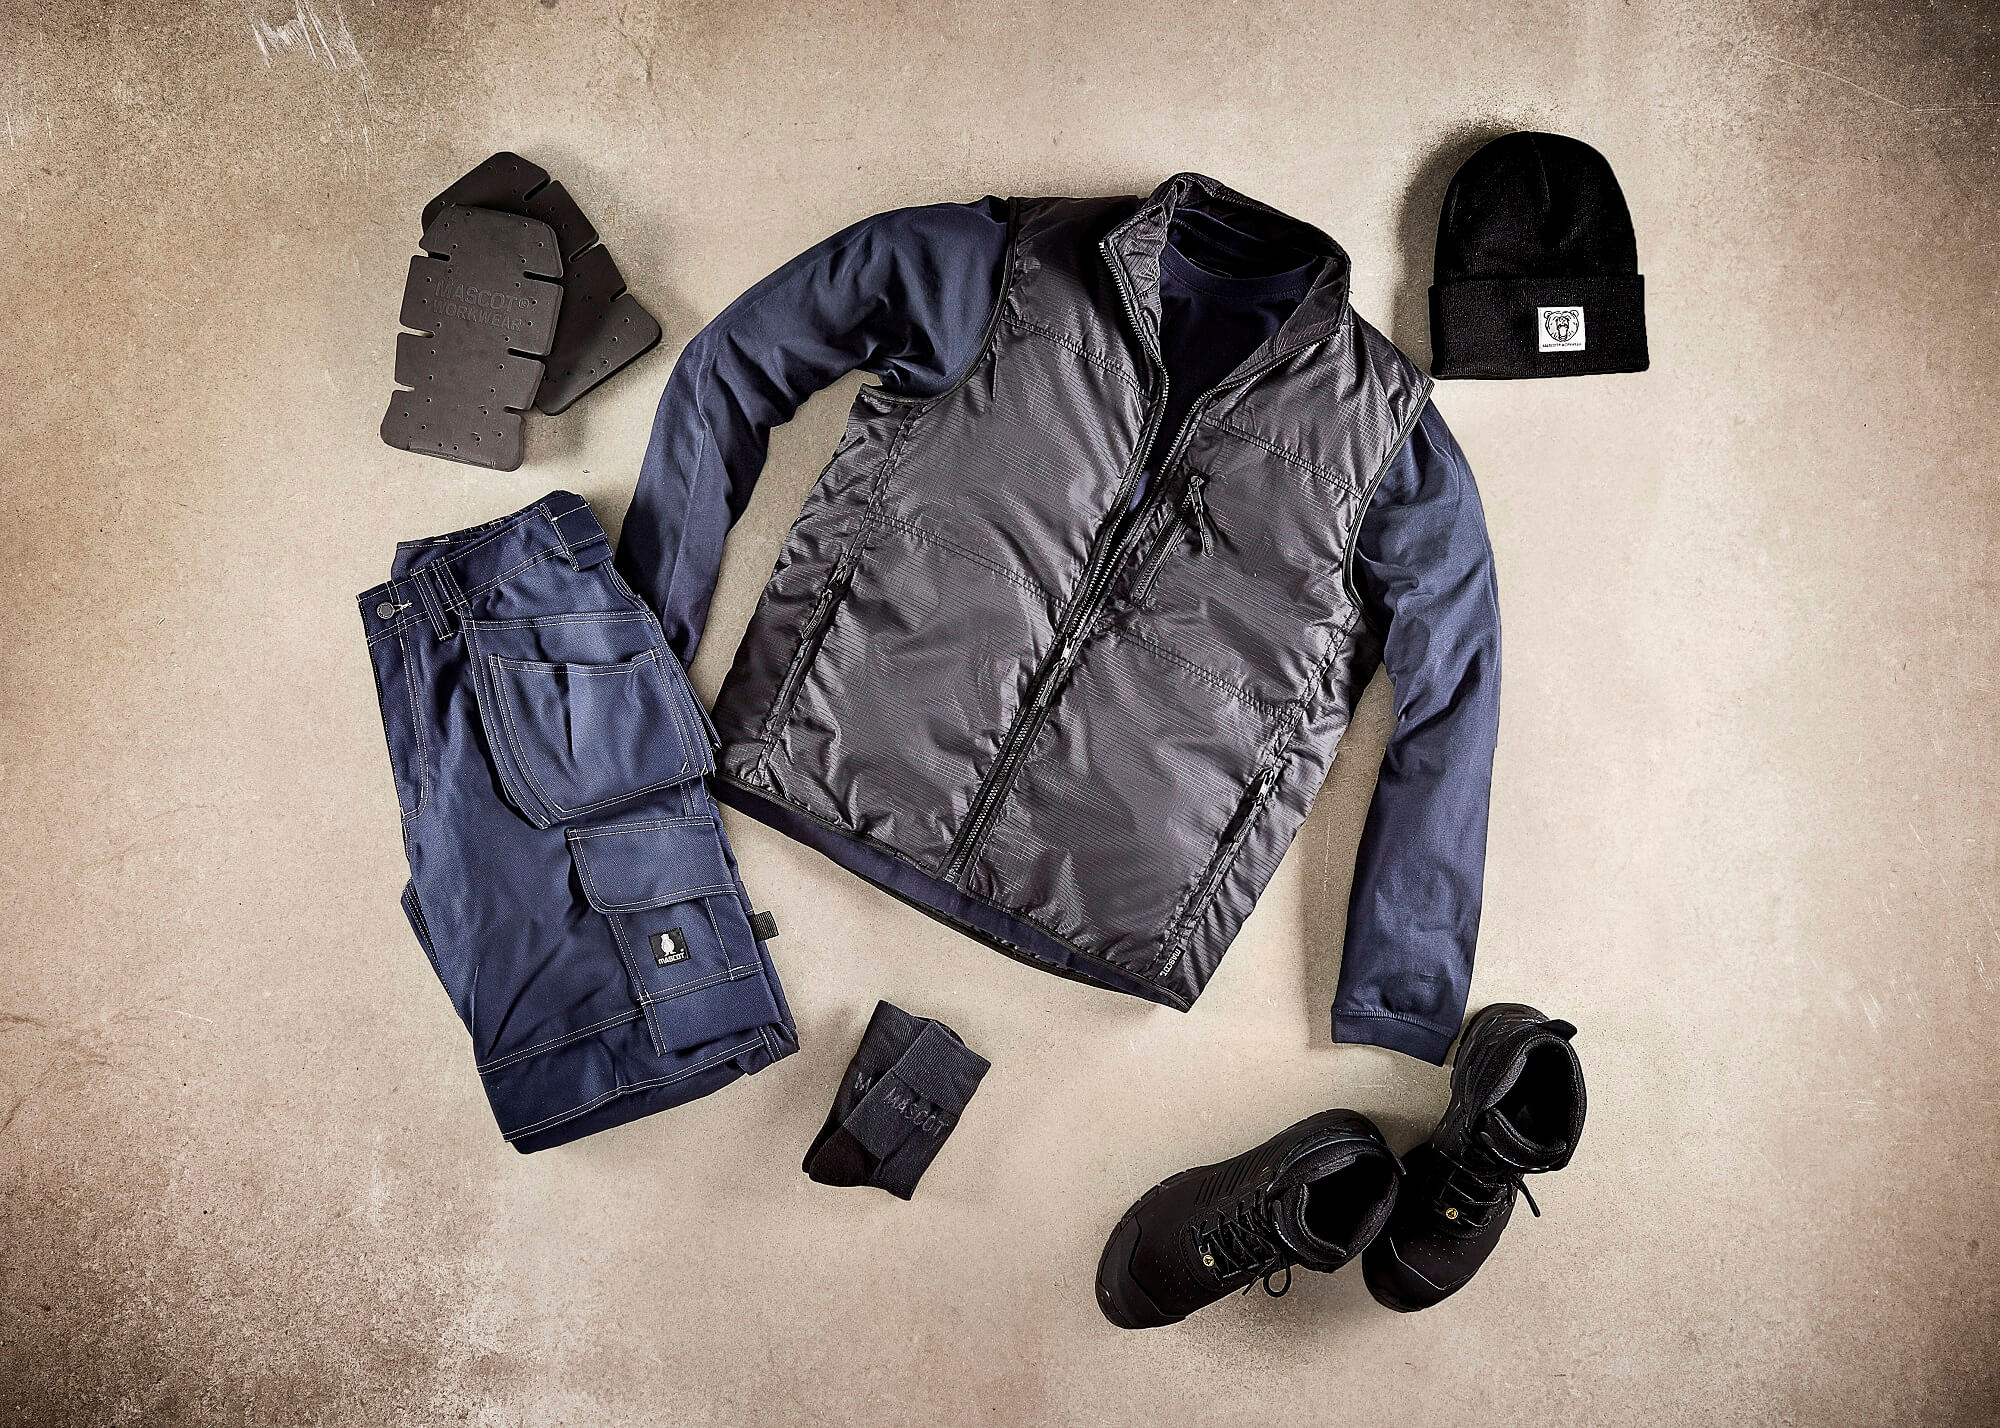 Work Gilet, Trousers & Safety Boot - Collage - Navy